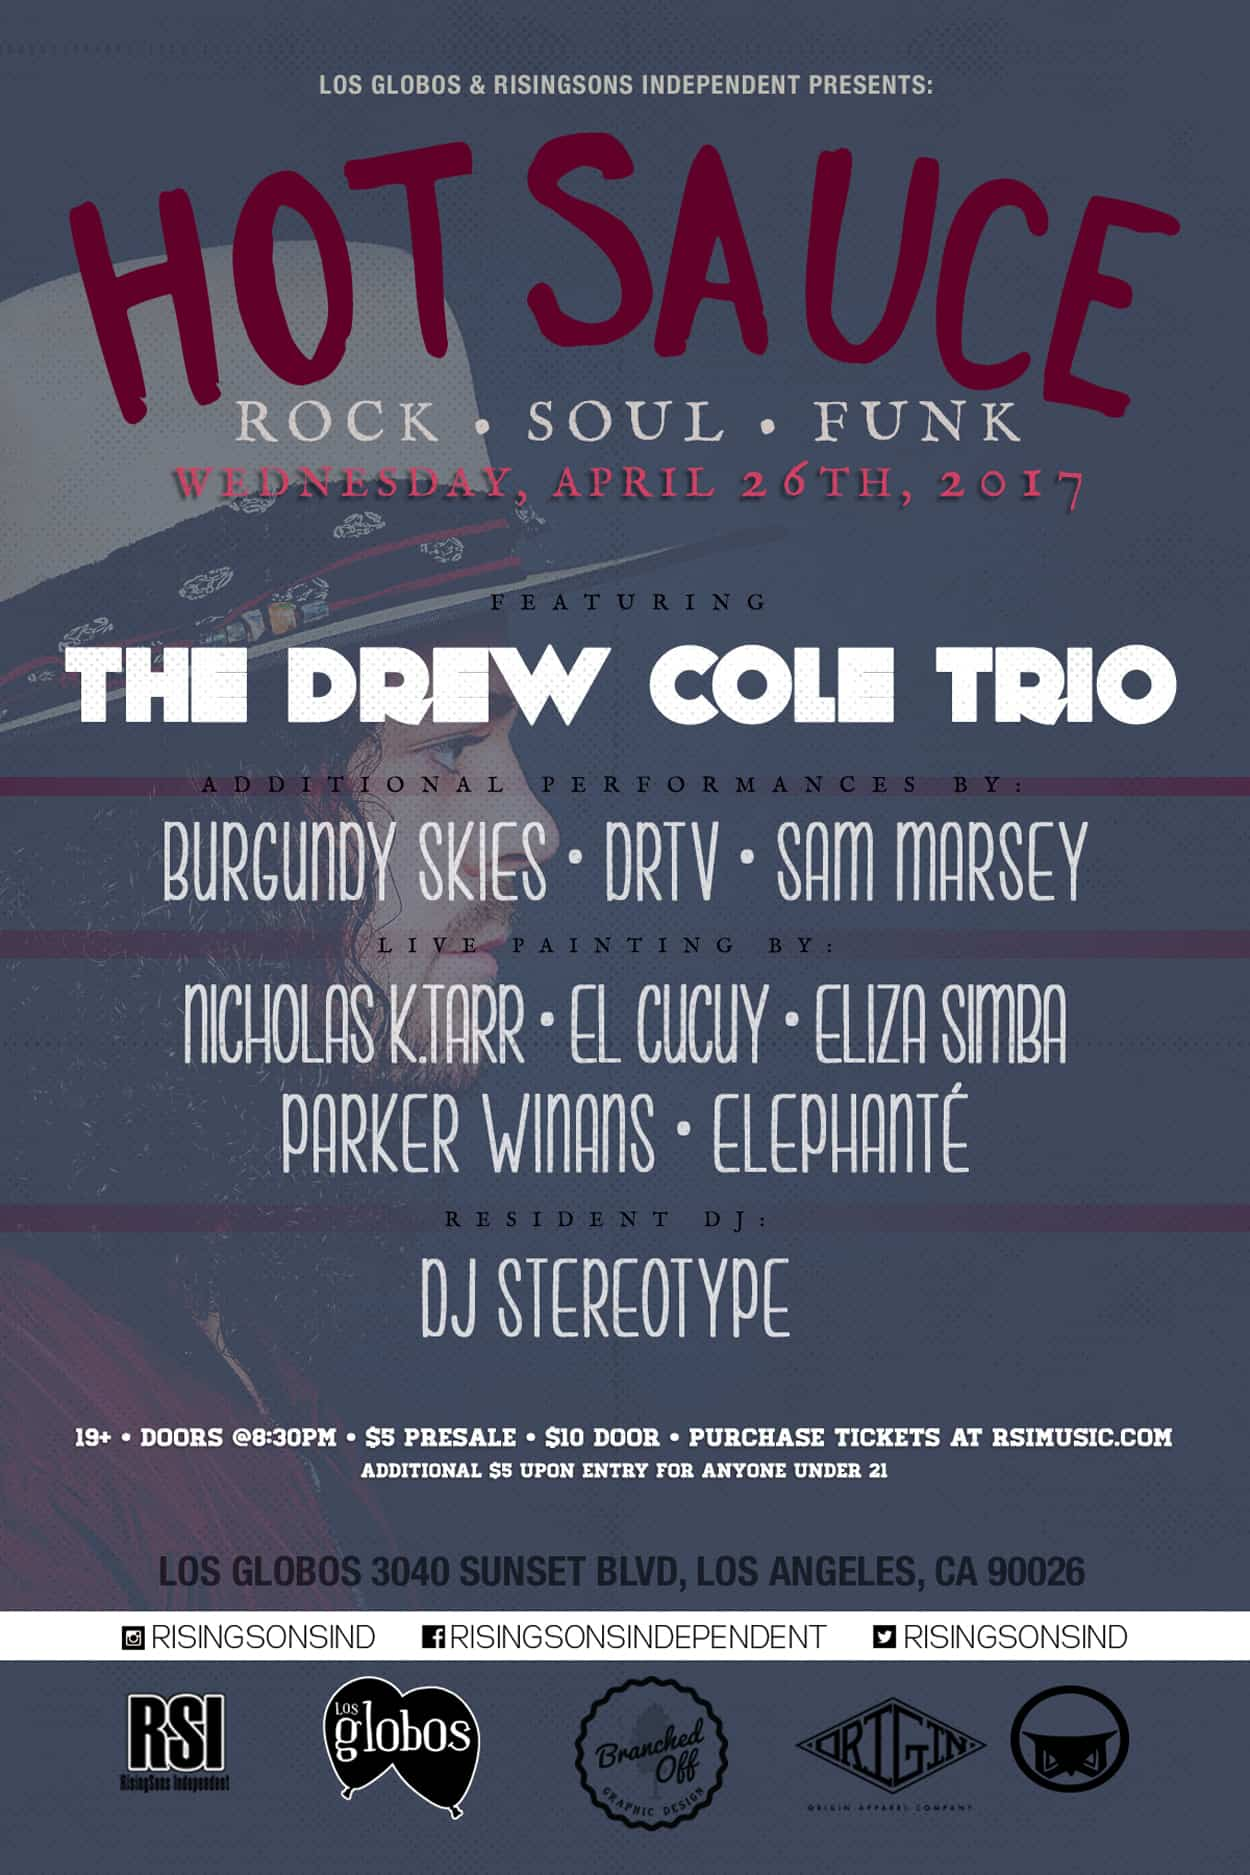 Hot Sauce - The Drew Cole Trio - Flyer Design